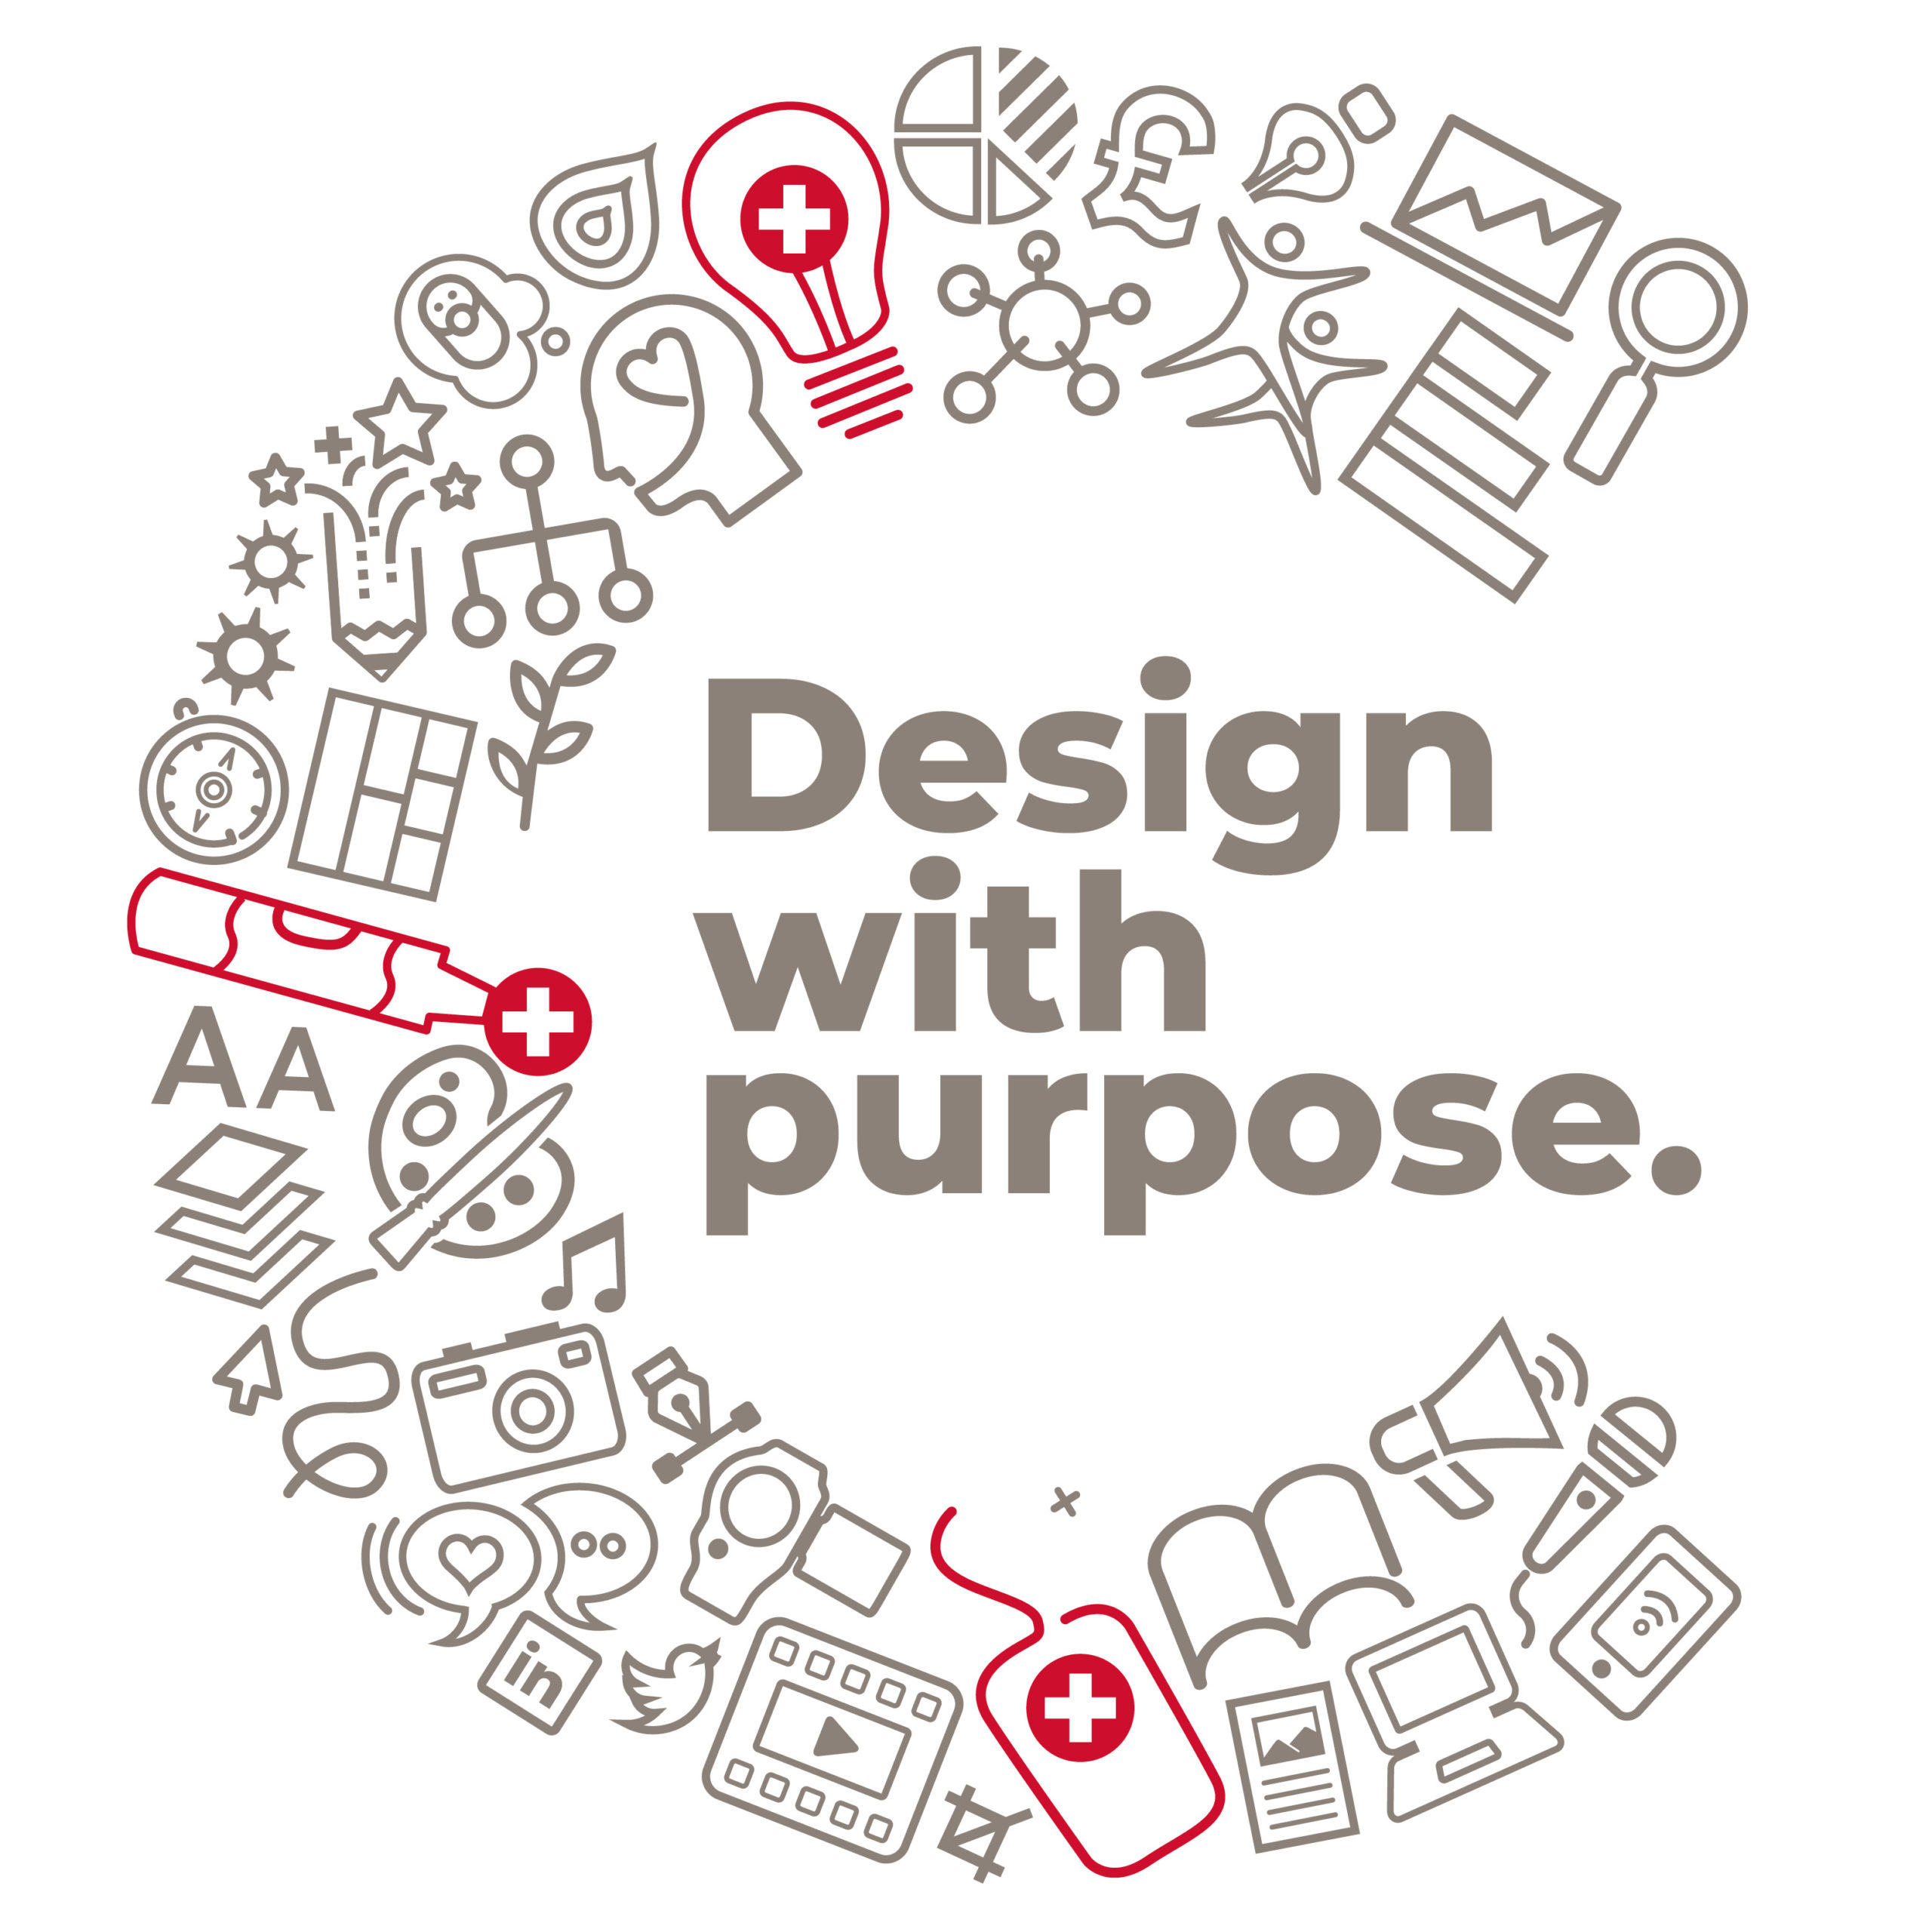 Cohesion Design, design with purpose